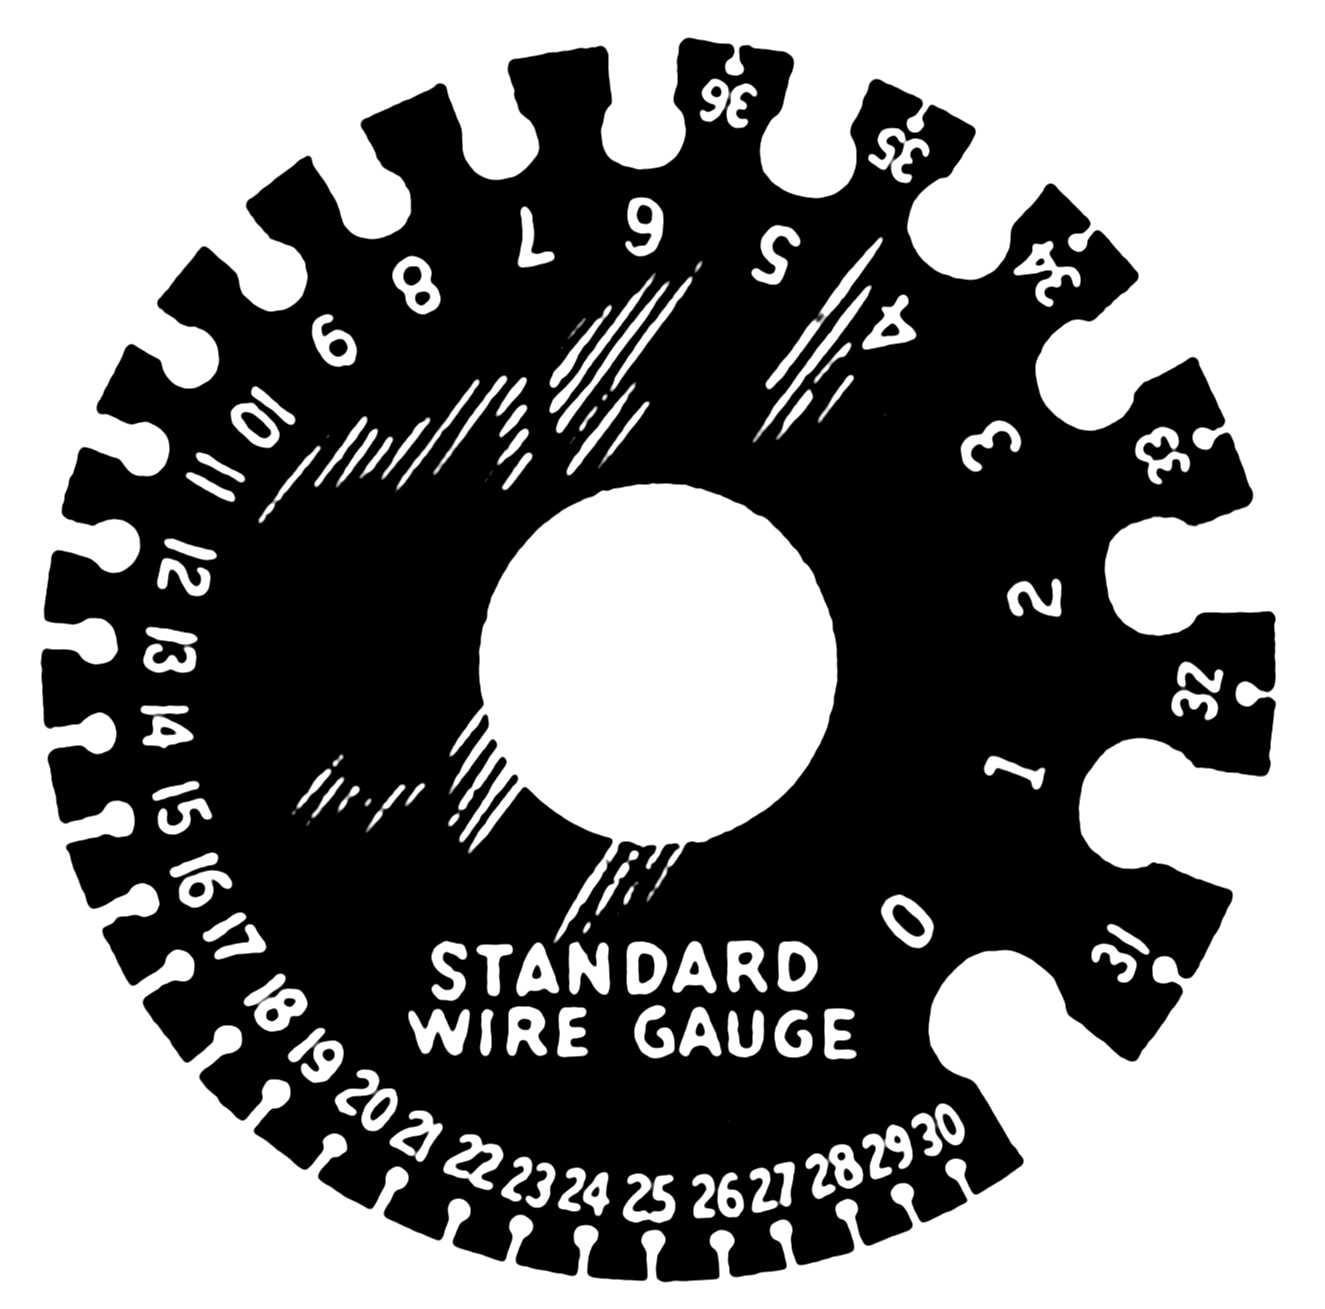 File:Wire gauge (PSF).png - Wikimedia Commons